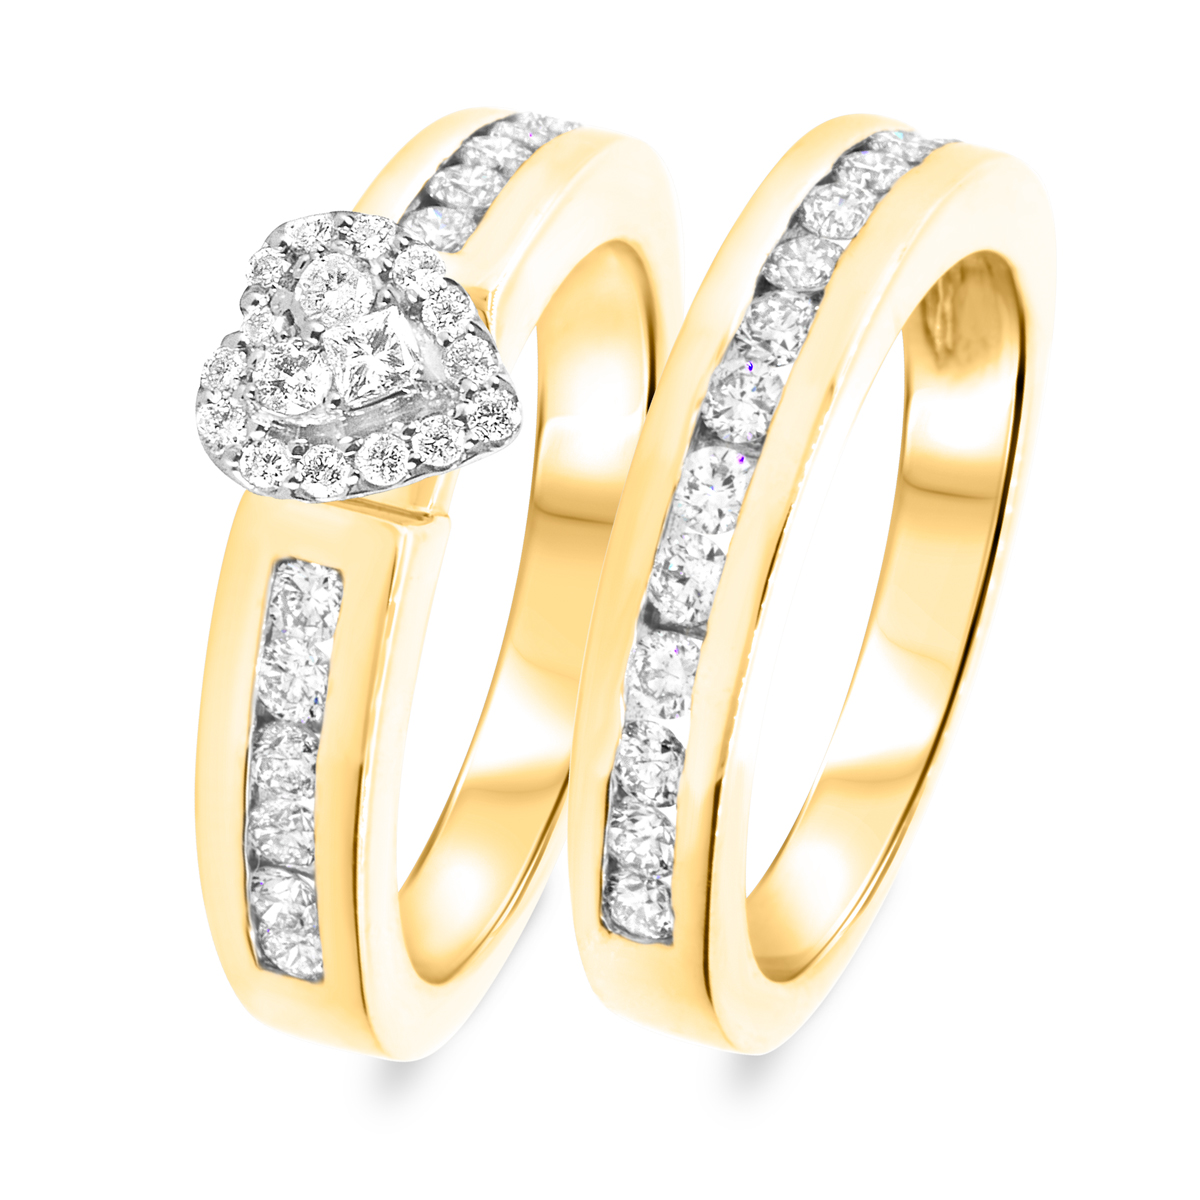 1 1/7 CT. T.W. Diamond Women's Bridal Wedding Ring Set 10K Yellow Gold